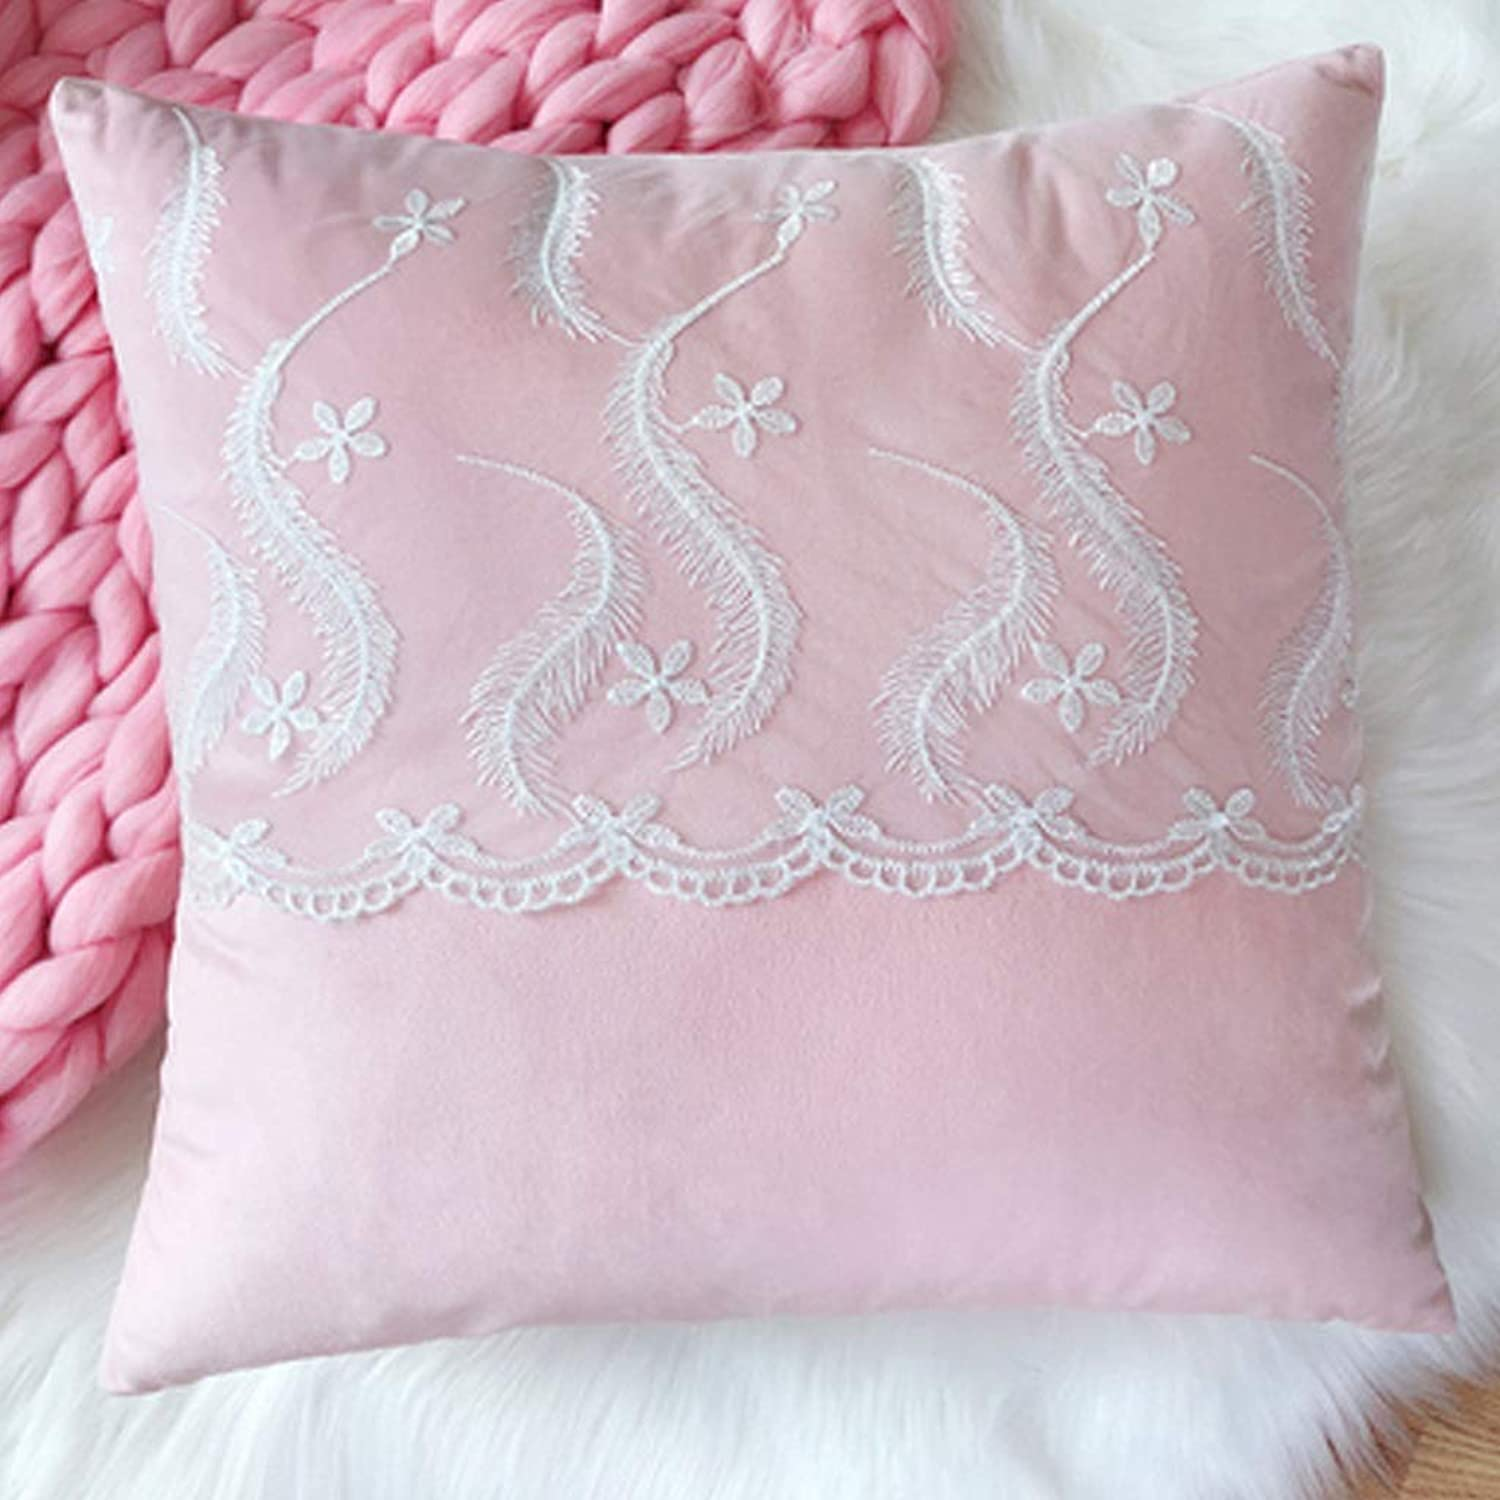 Pillow Pink Princess Wind Cute Girl Heart Cushion Sofa Pillow Pillow, Home Decoration Soft and Durable QYSZYG (color   A)